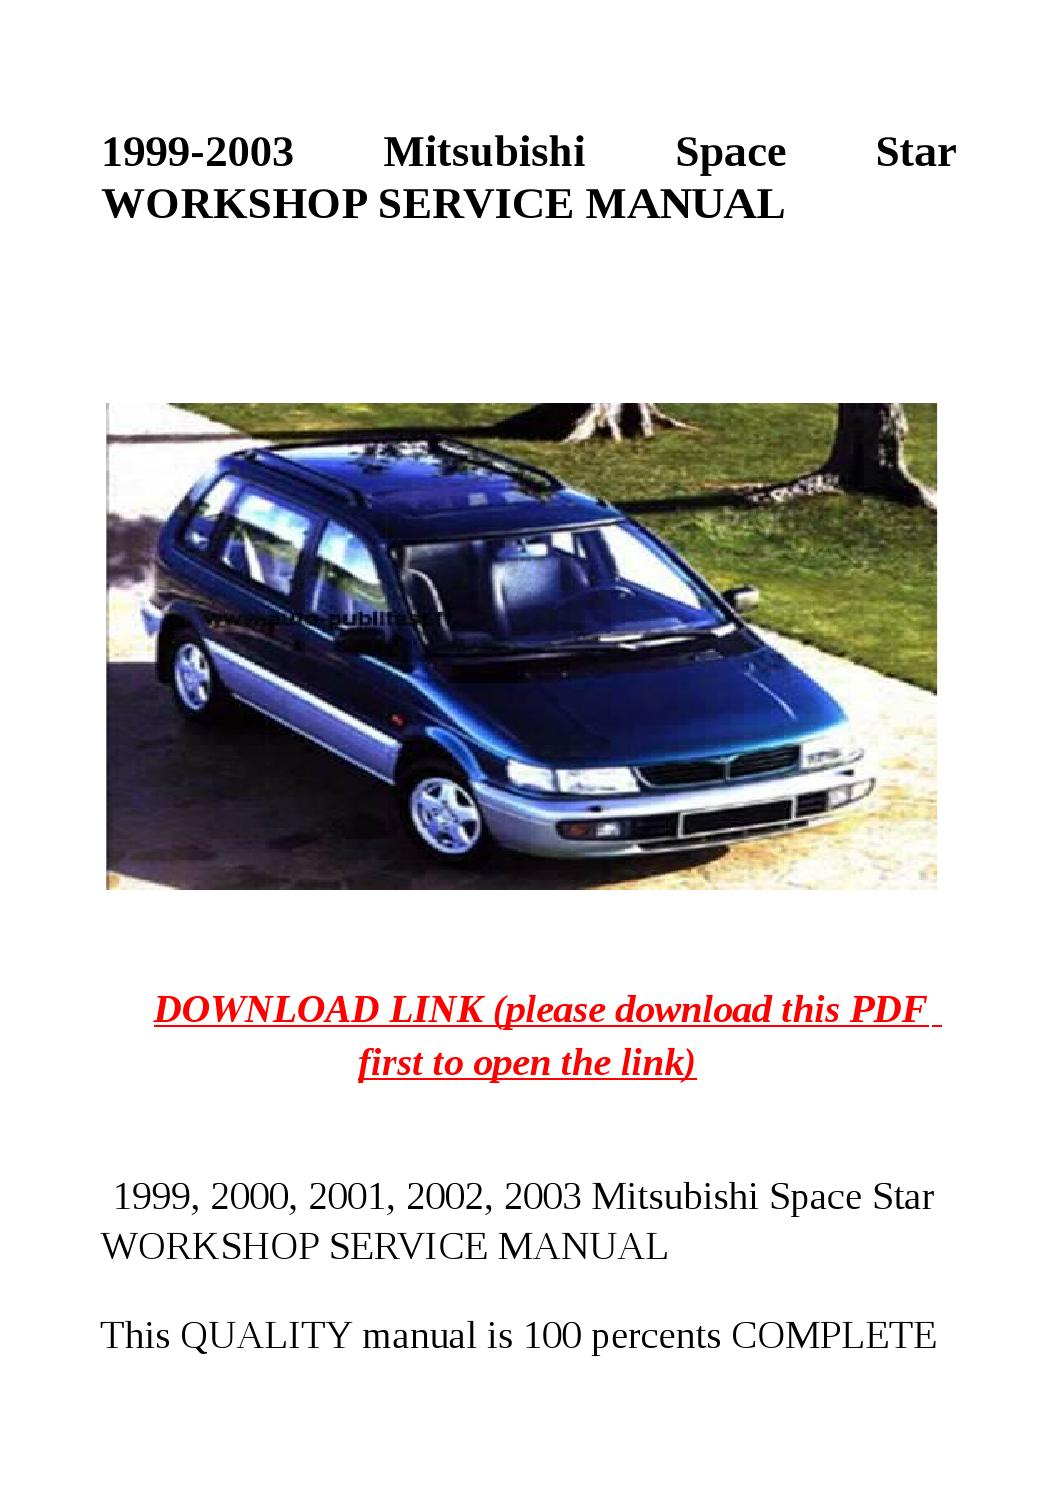 1999 2003 Mitsubishi Space Star Workshop Service Manual By